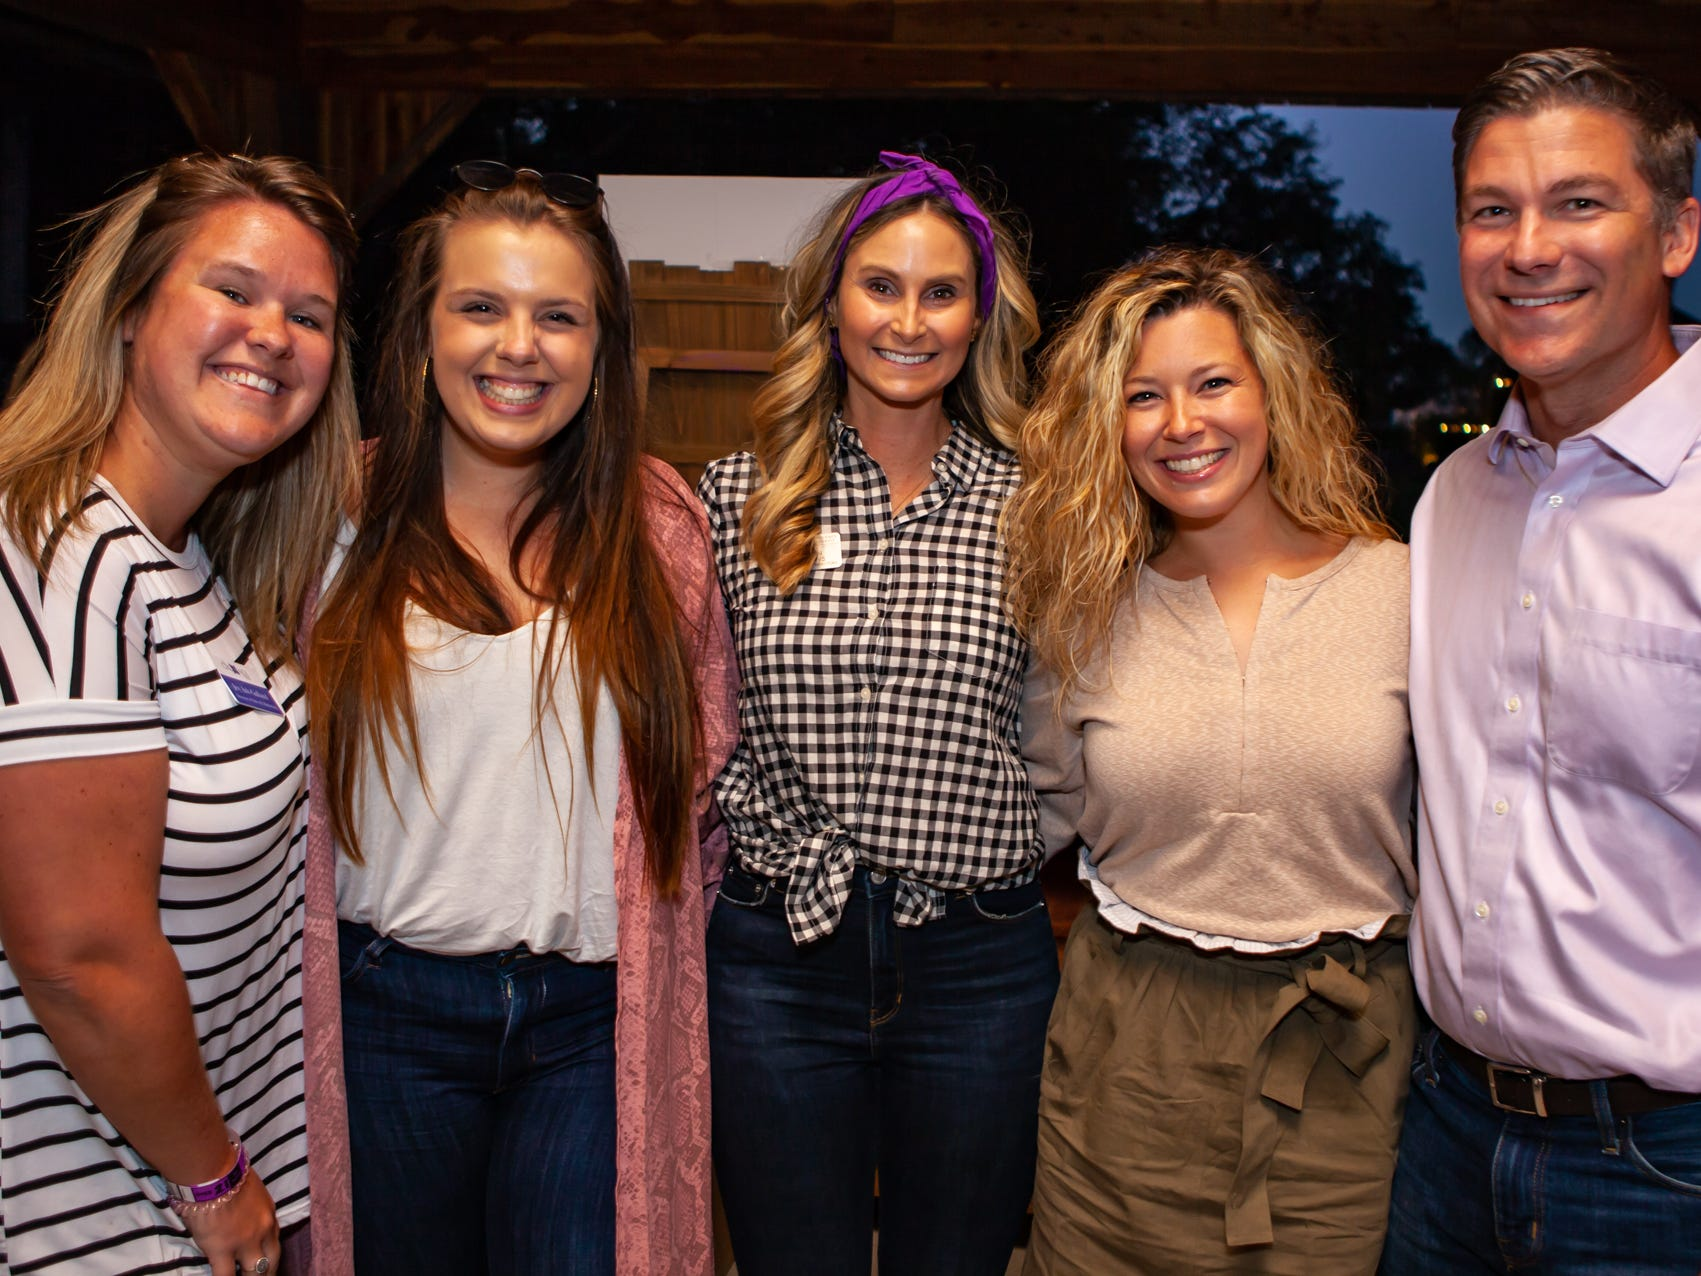 Boots and Brews: Joy Ash-Galland, Bethany Cardence, Erin Rains, and Chelsea and Gabriel Fancher